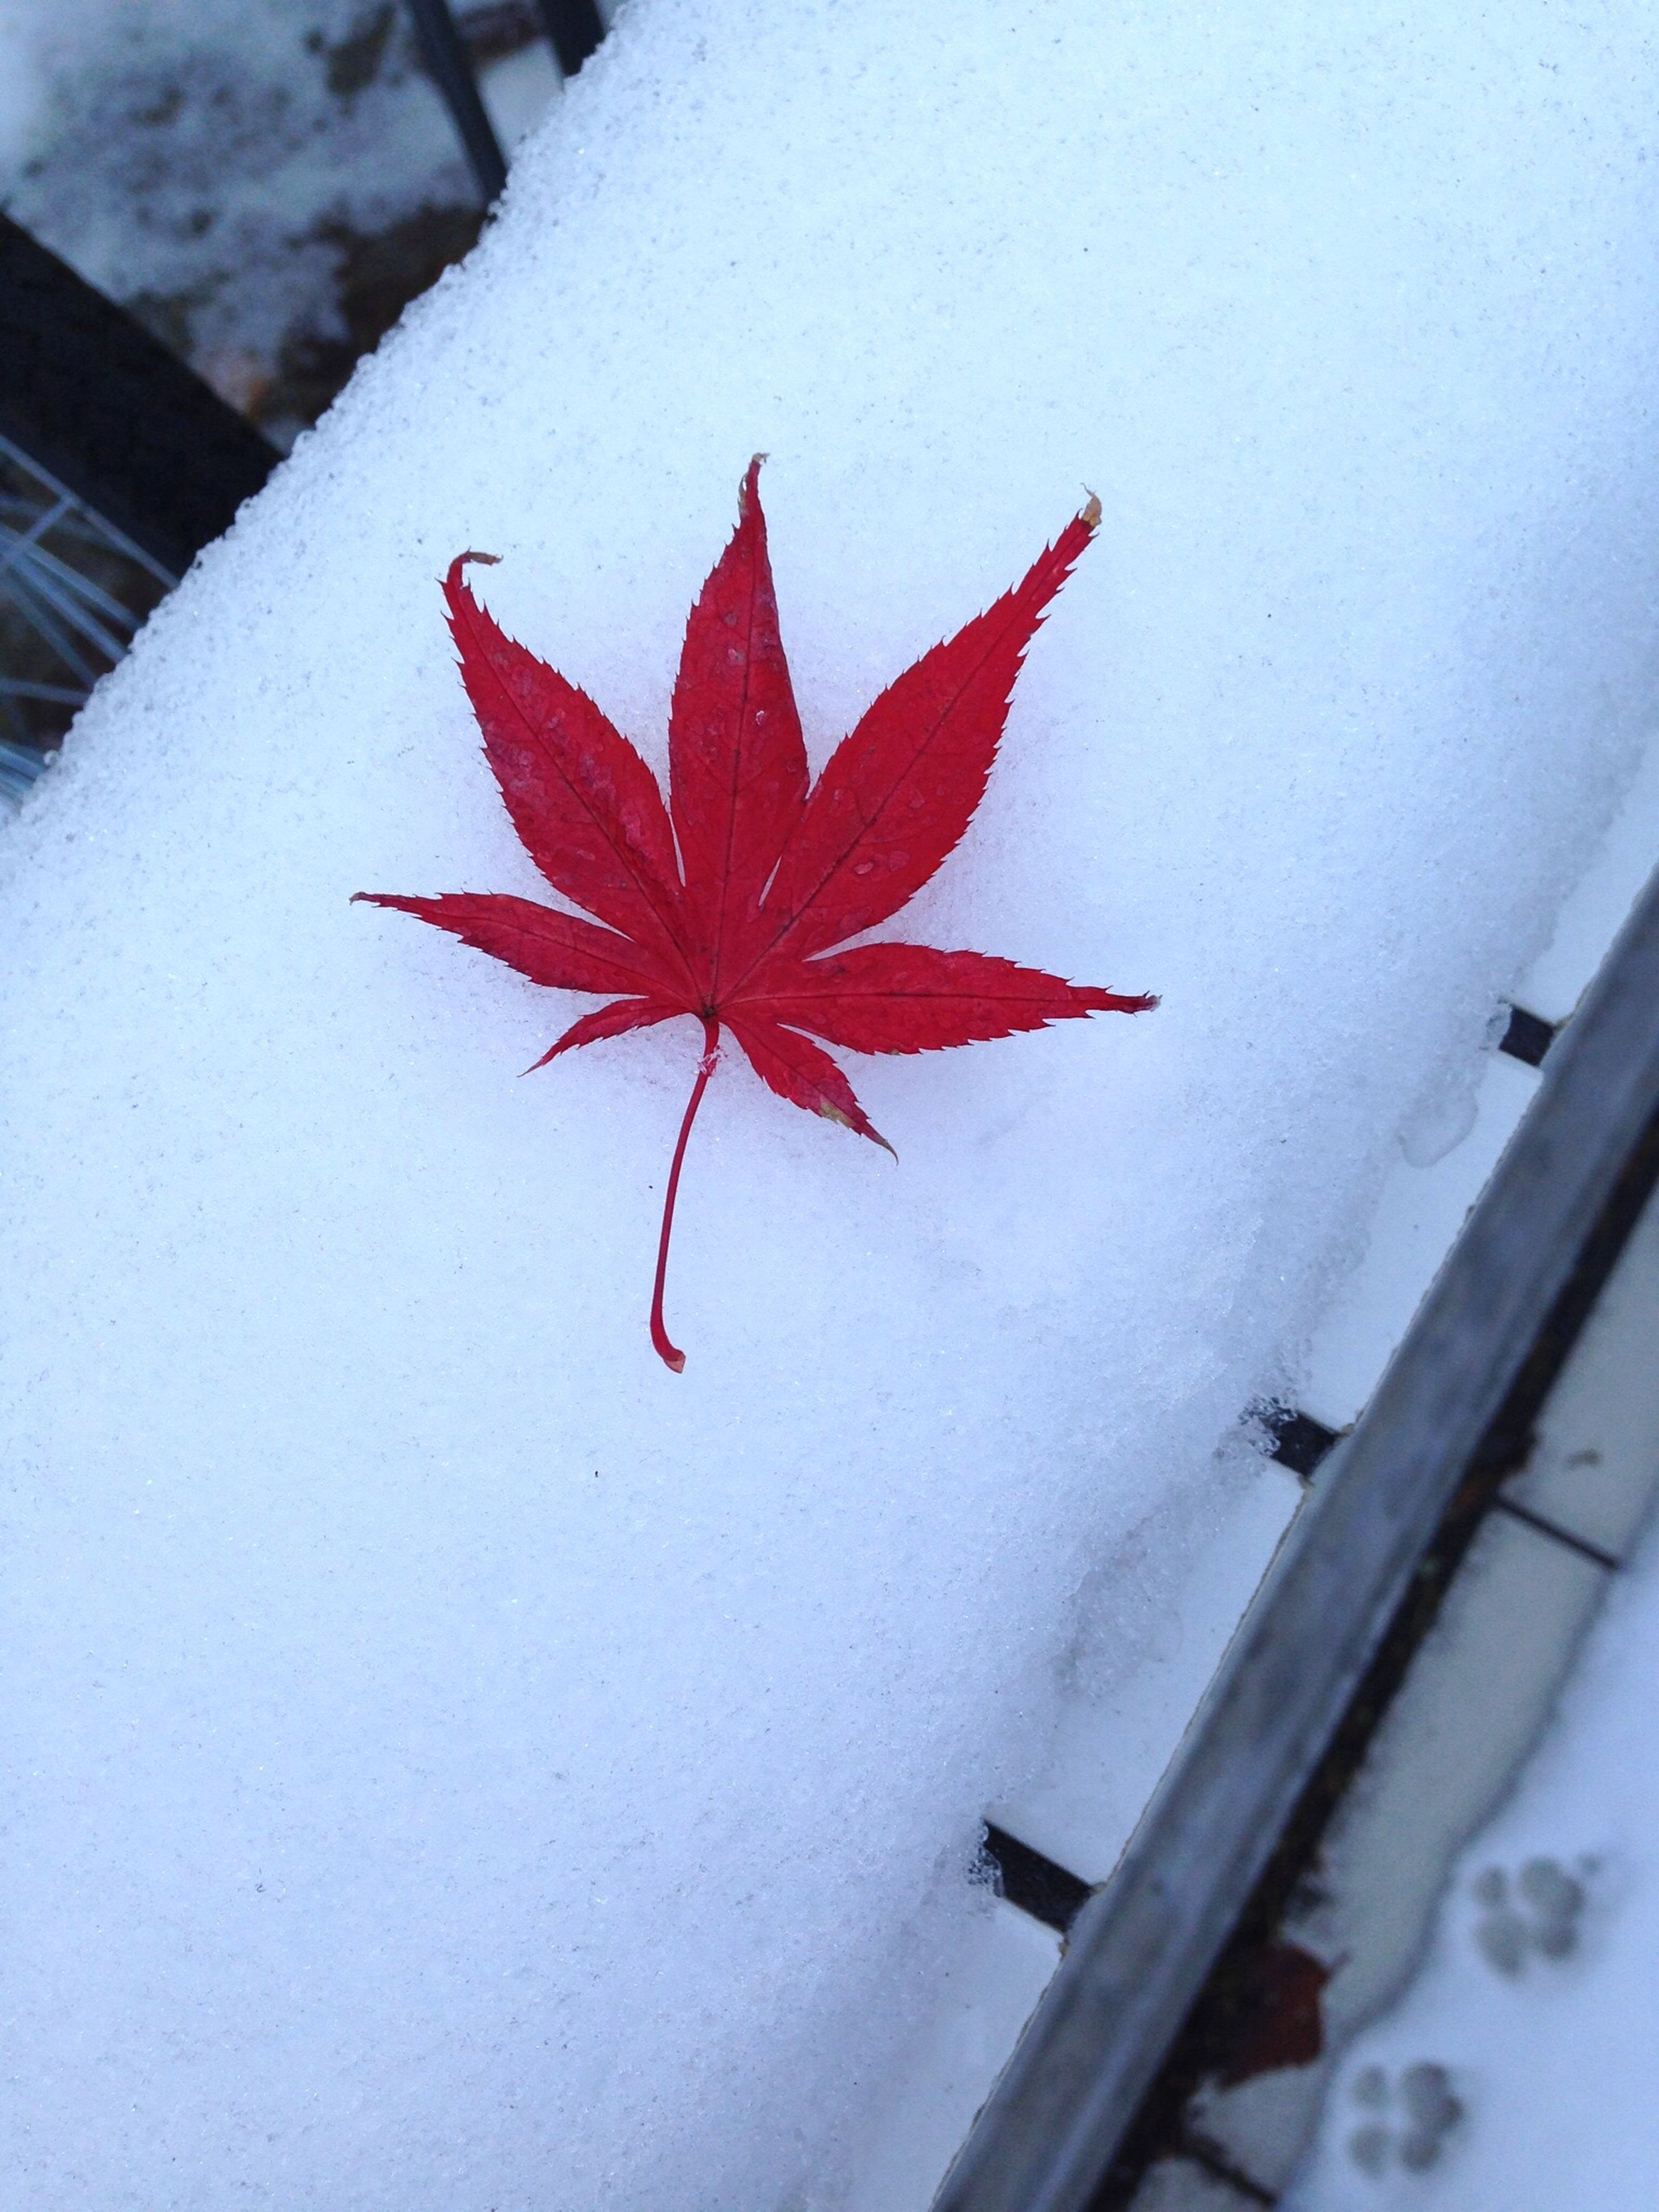 season, winter, cold temperature, snow, autumn, weather, change, red, maple leaf, leaf, close-up, frozen, high angle view, nature, indoors, white color, no people, covering, day, star shape